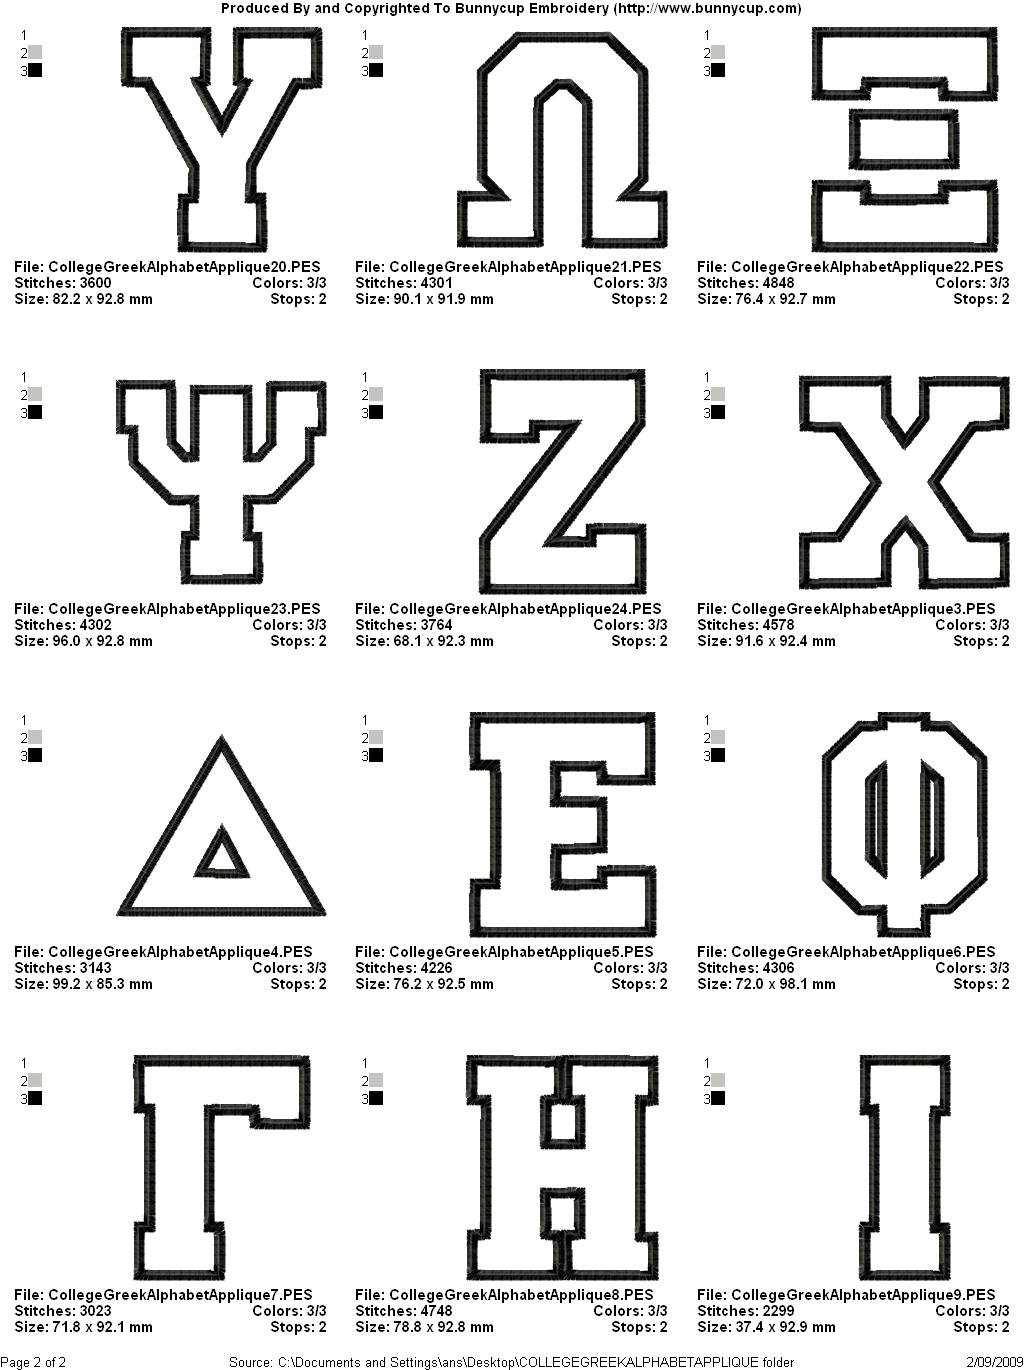 College Greek Alphabet Applique Applique Embroidery